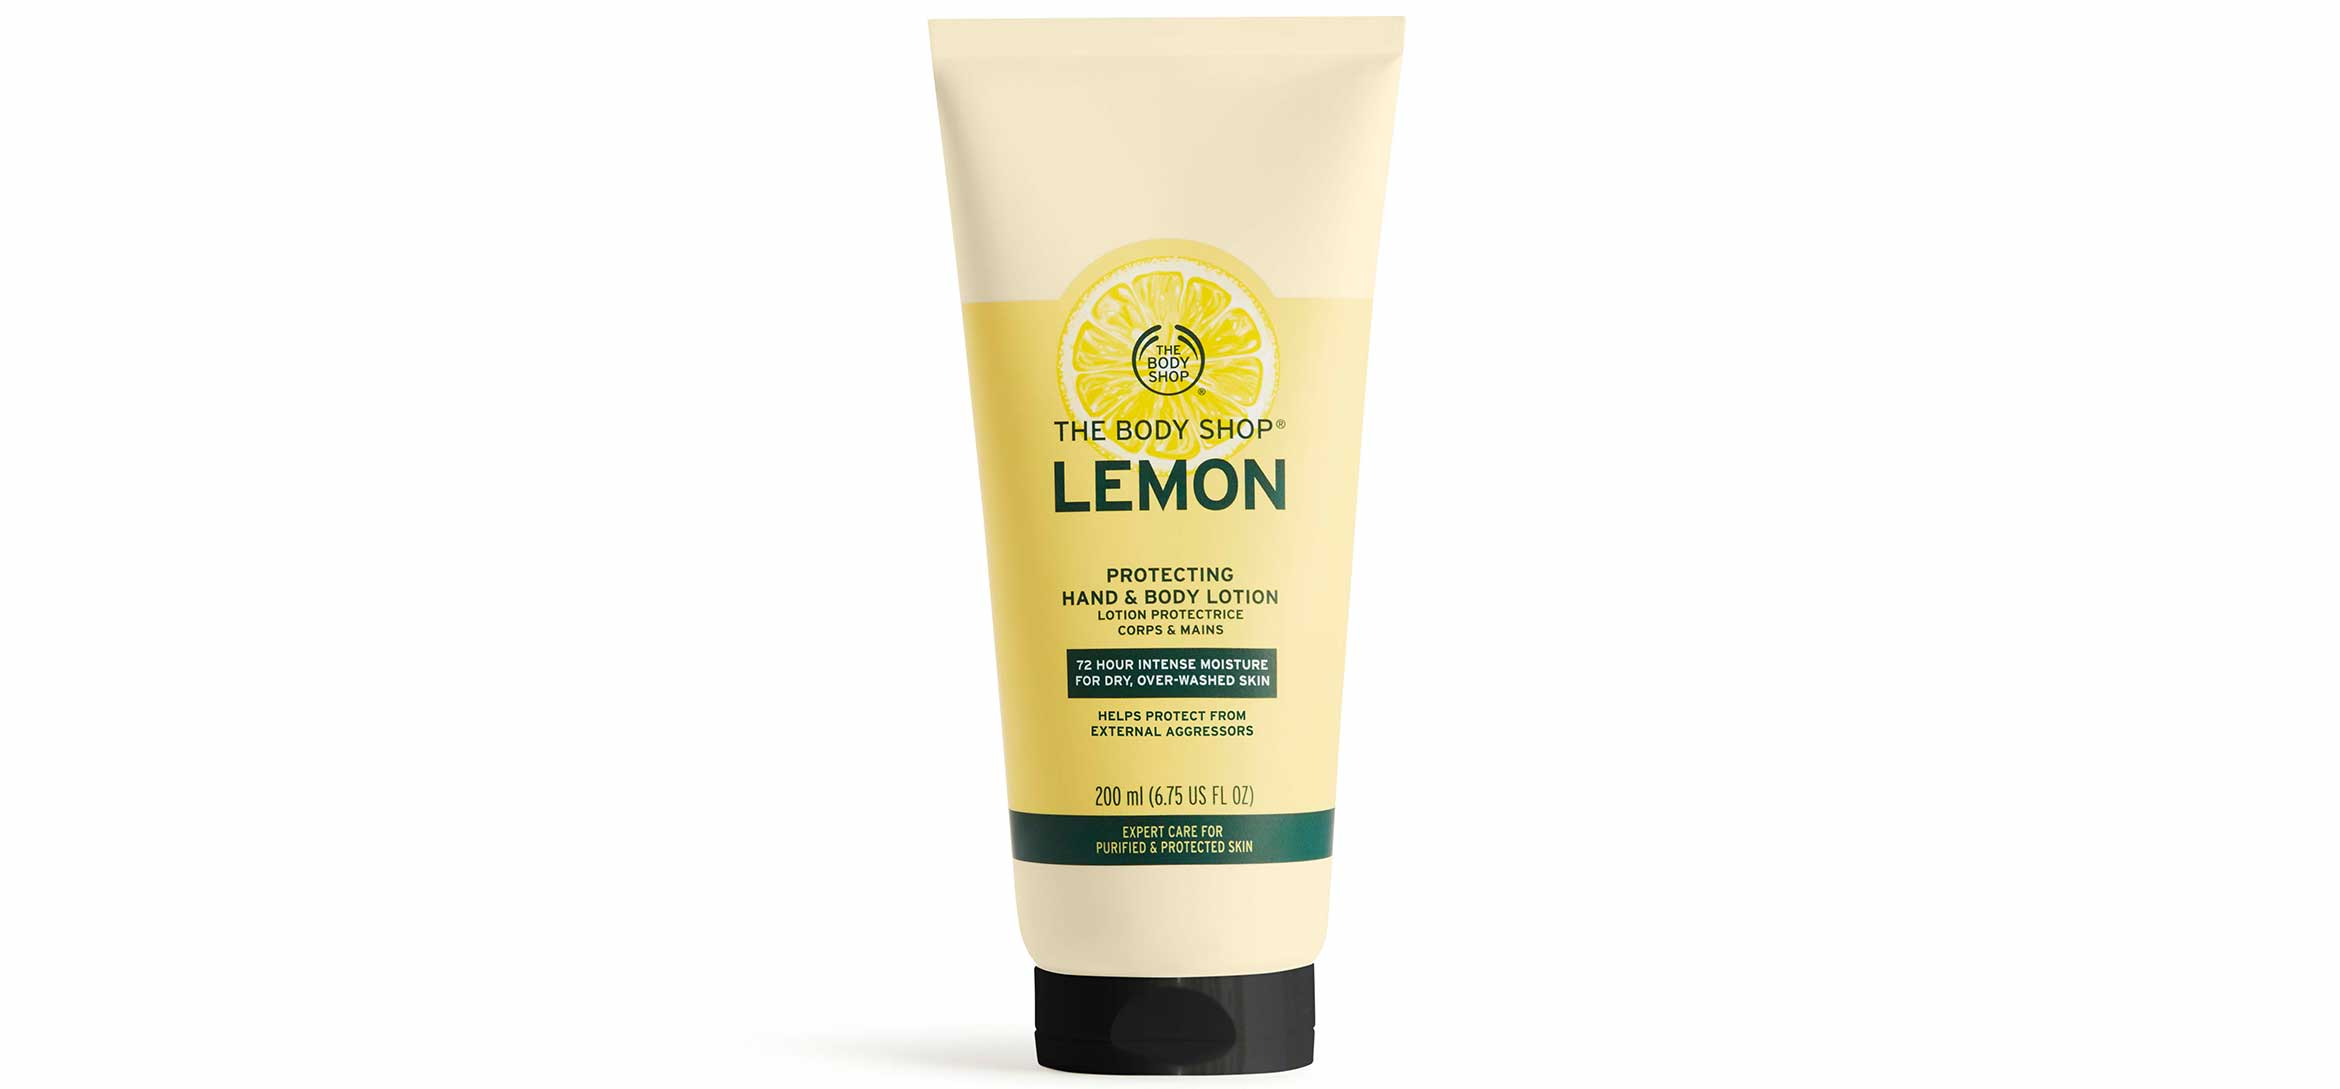 the body shop lemon protecting hand & body lotion